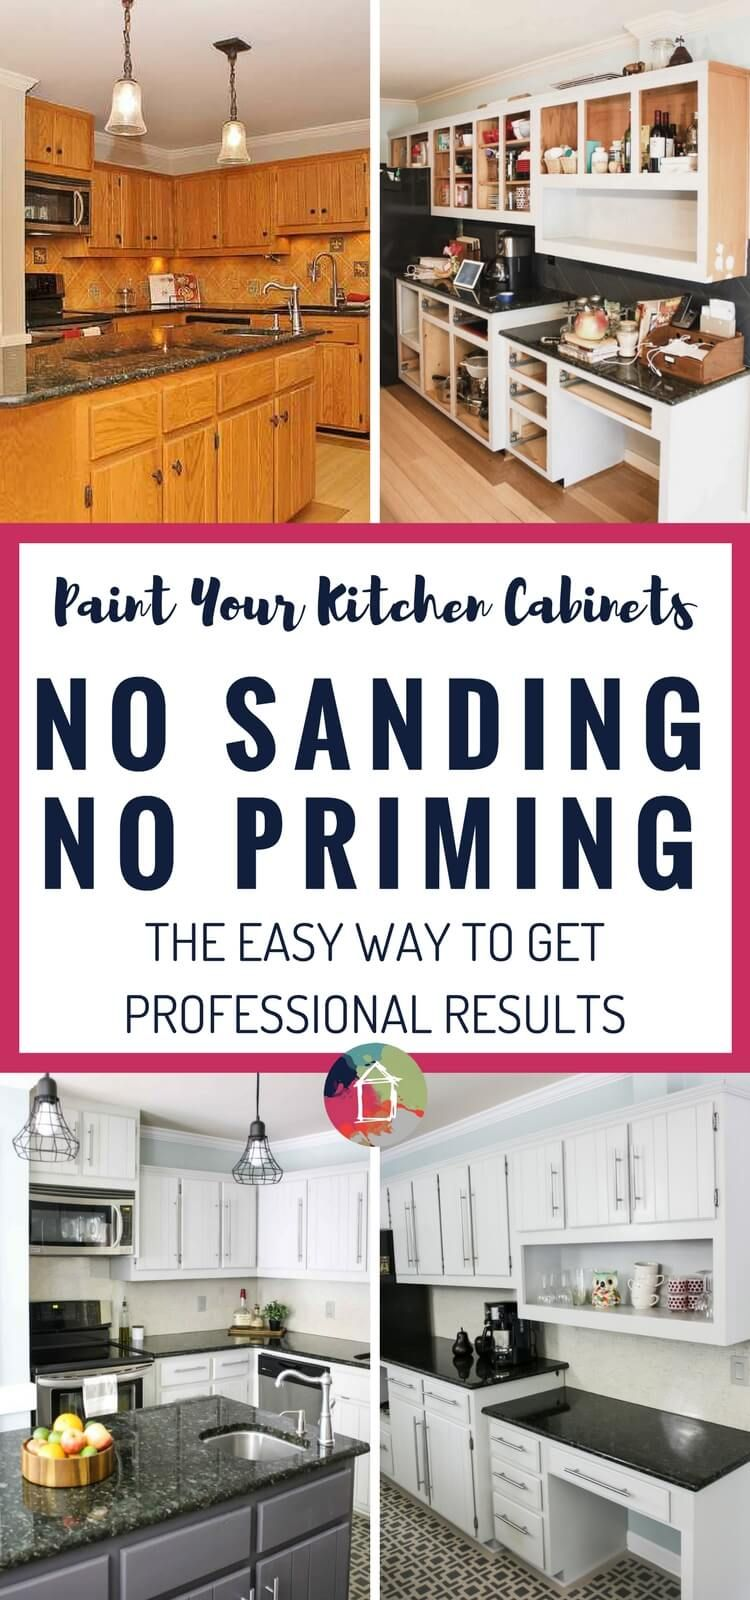 Diy Refinished And Painted Cabinet Reviews: How To Paint Kitchen Cabinets Without Sanding Or Priming